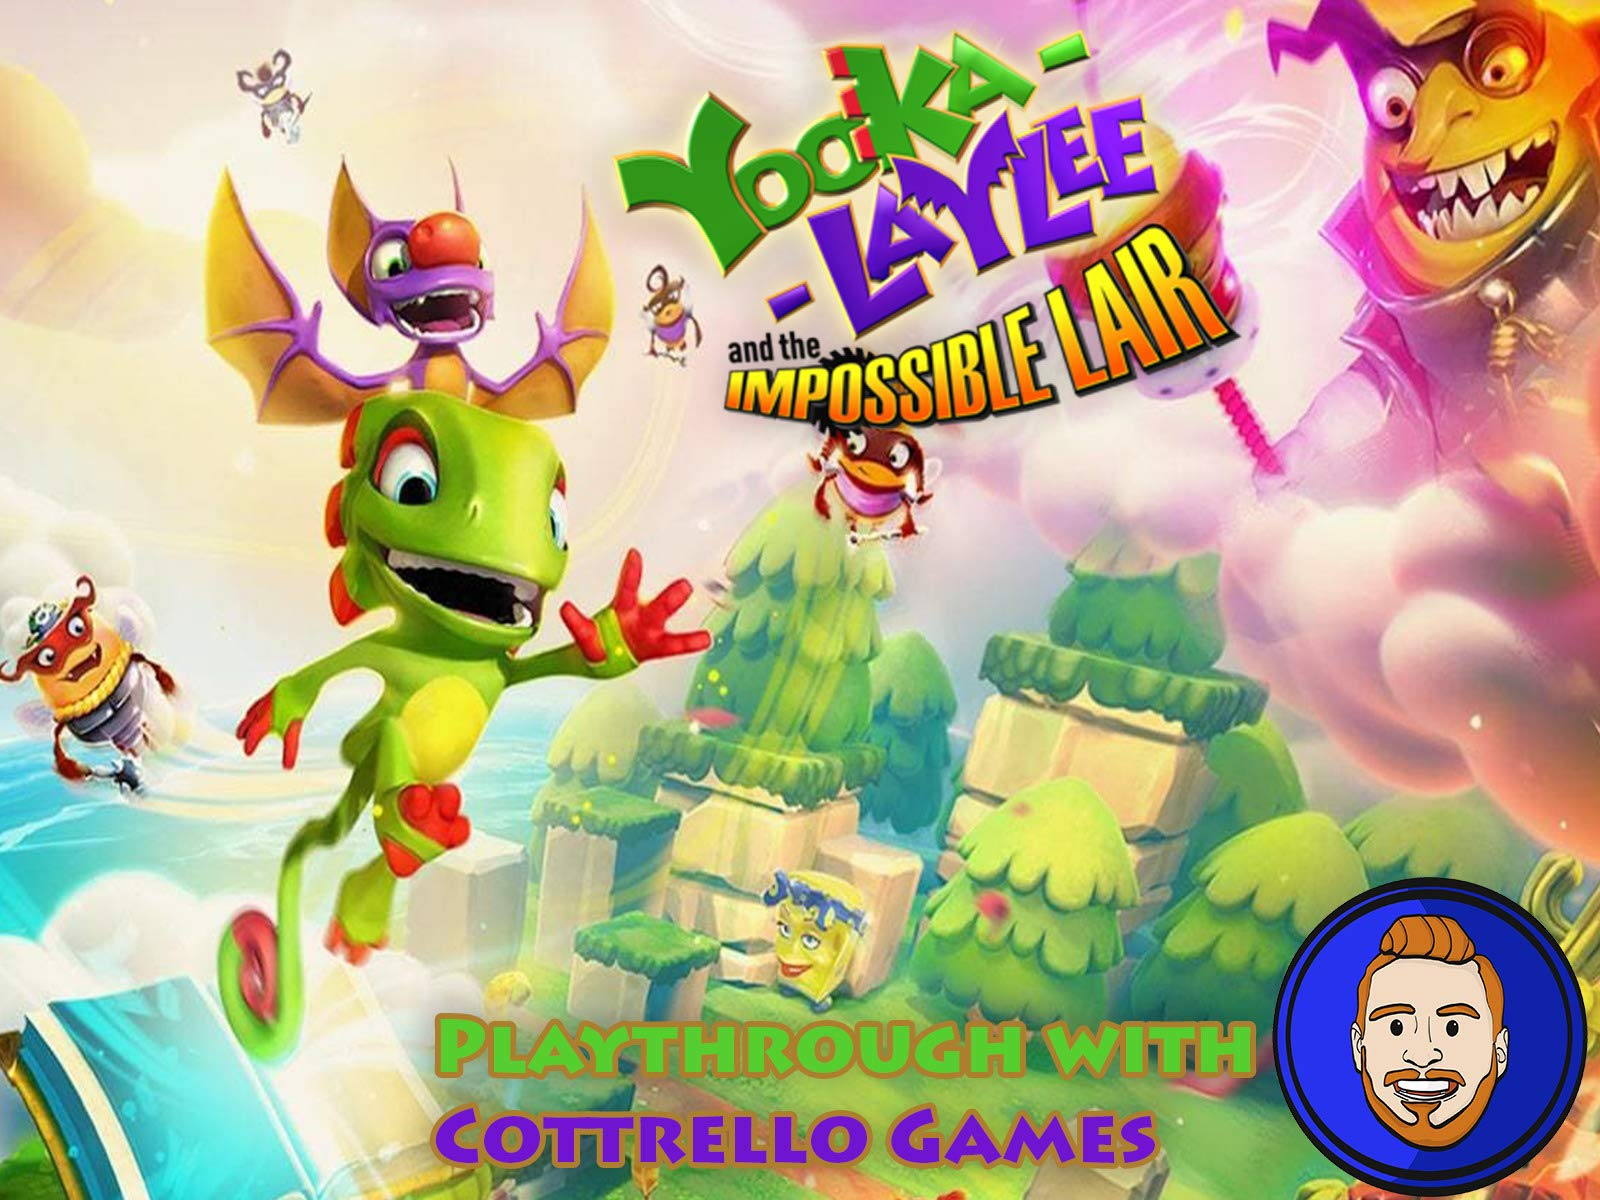 Yooka-Laylee and the Impossible Lair Playthrough with Cottrello Games